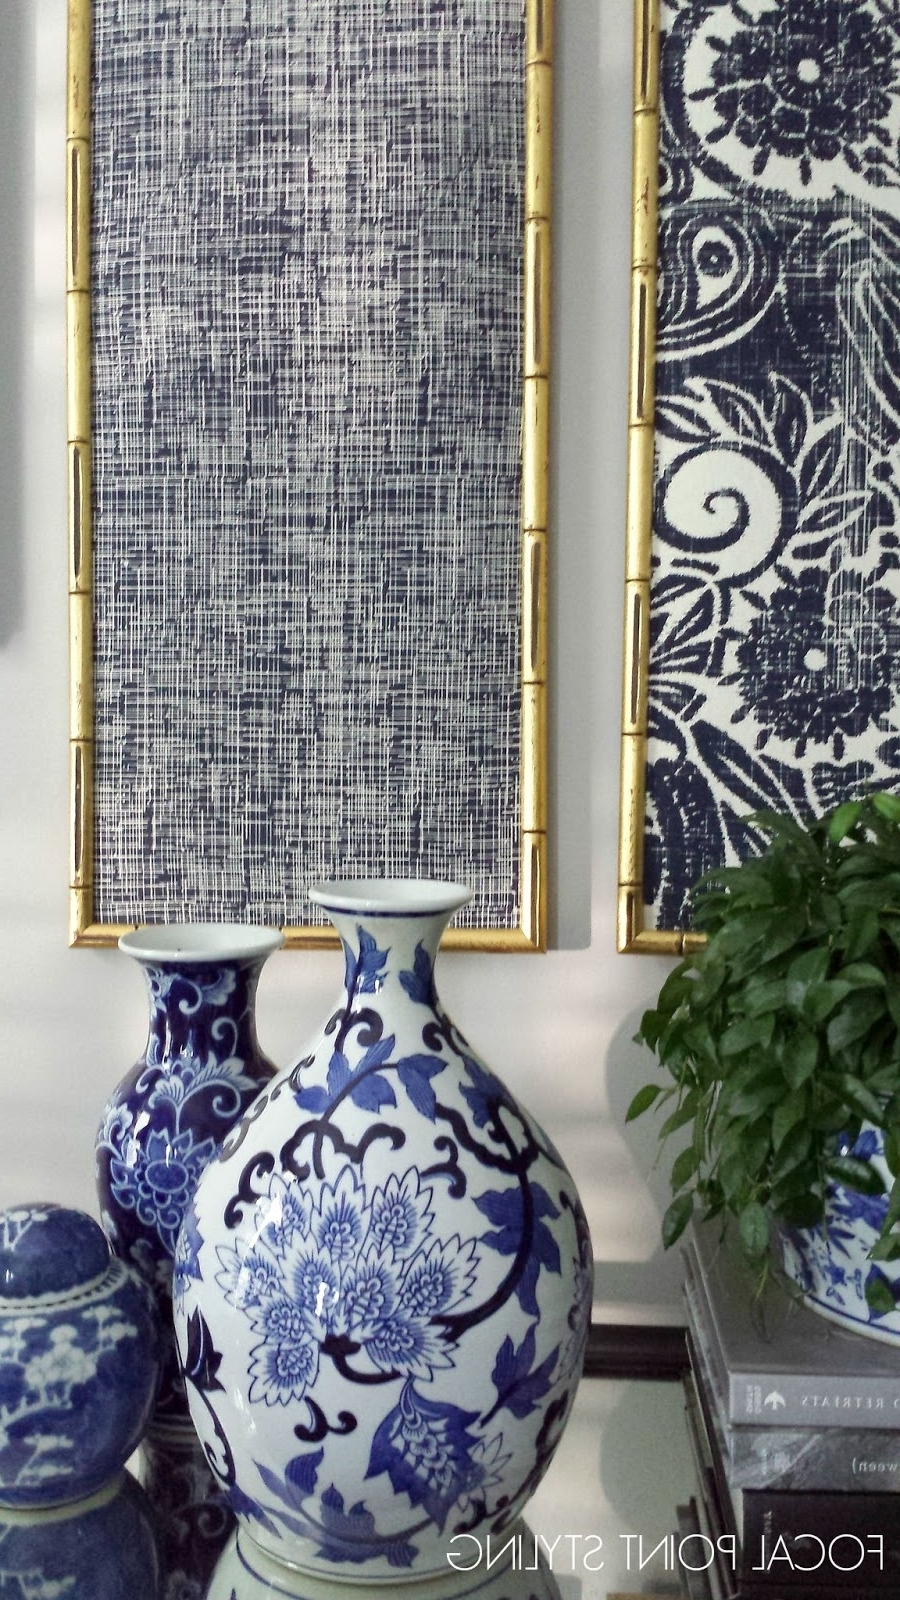 Widely Used Focal Point Styling: Diy Indigo Wall Art With Framed Fabric In Framed Fabric Wall Art (View 7 of 15)